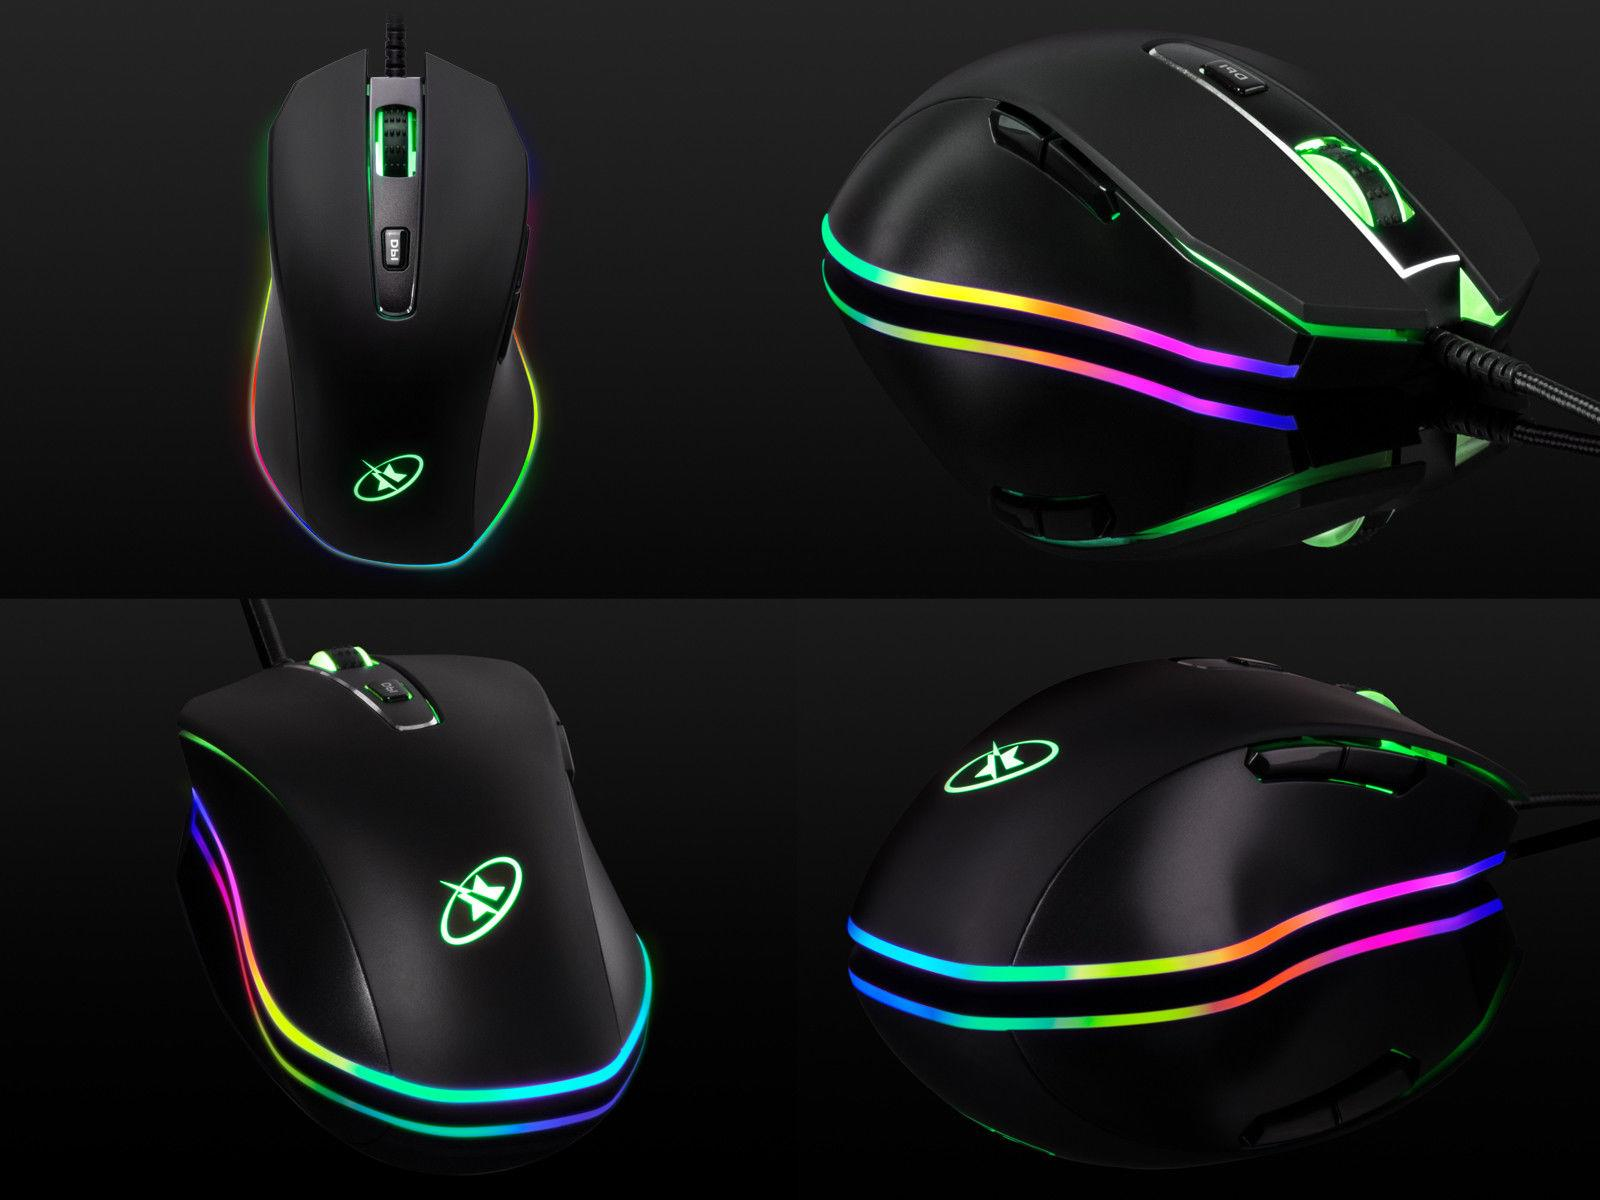 Rosewill Mouse 10000 dpi, Wired Gaming